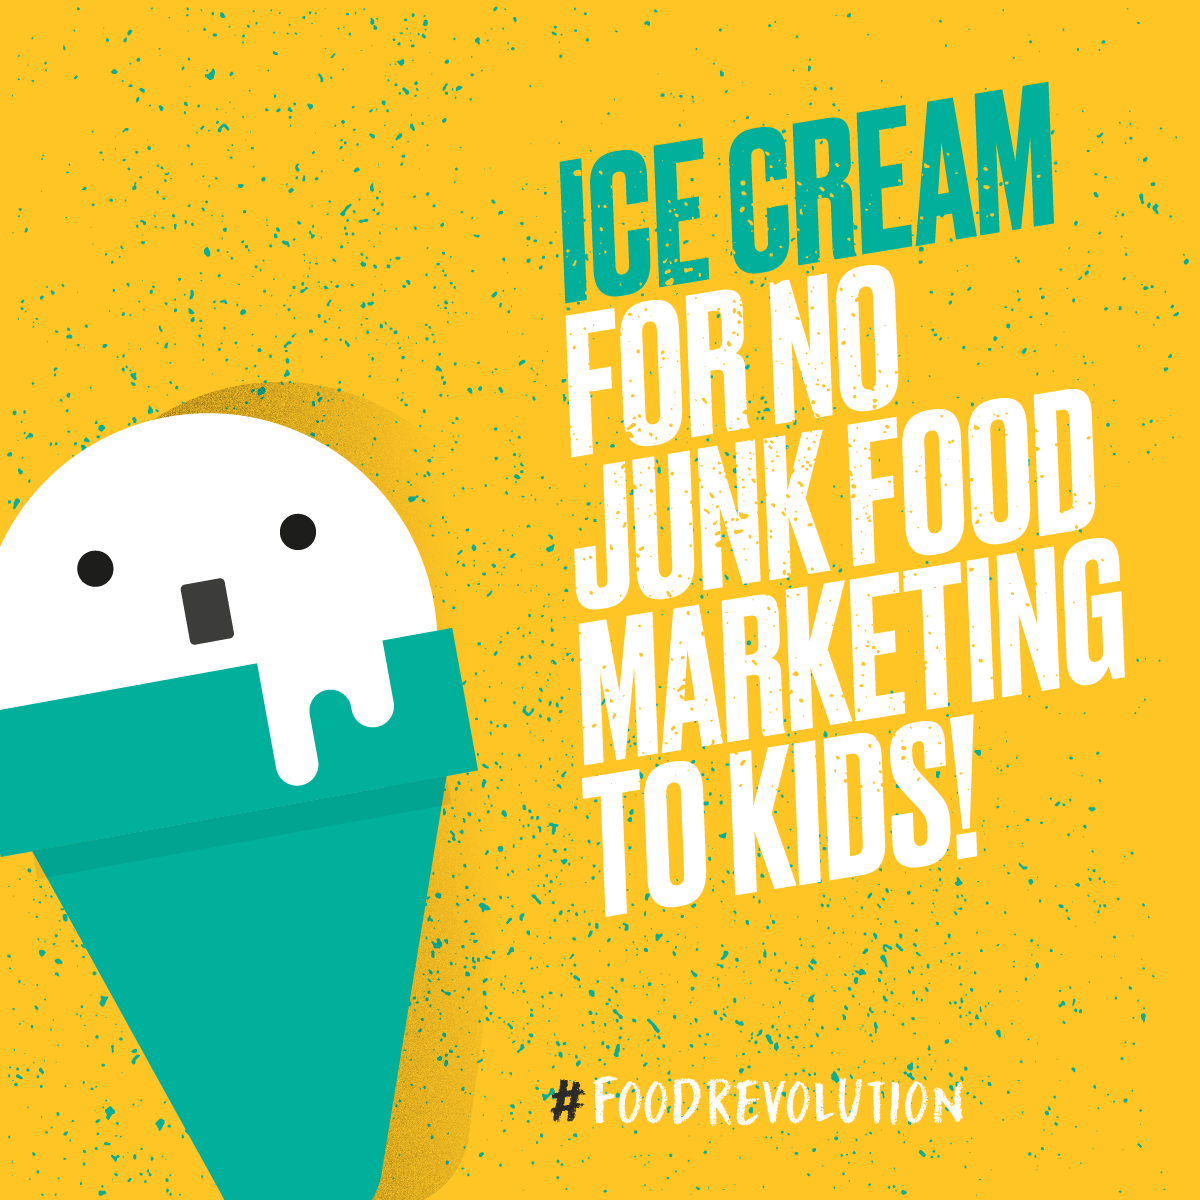 Banning junk food ads to kids is the right thing to do